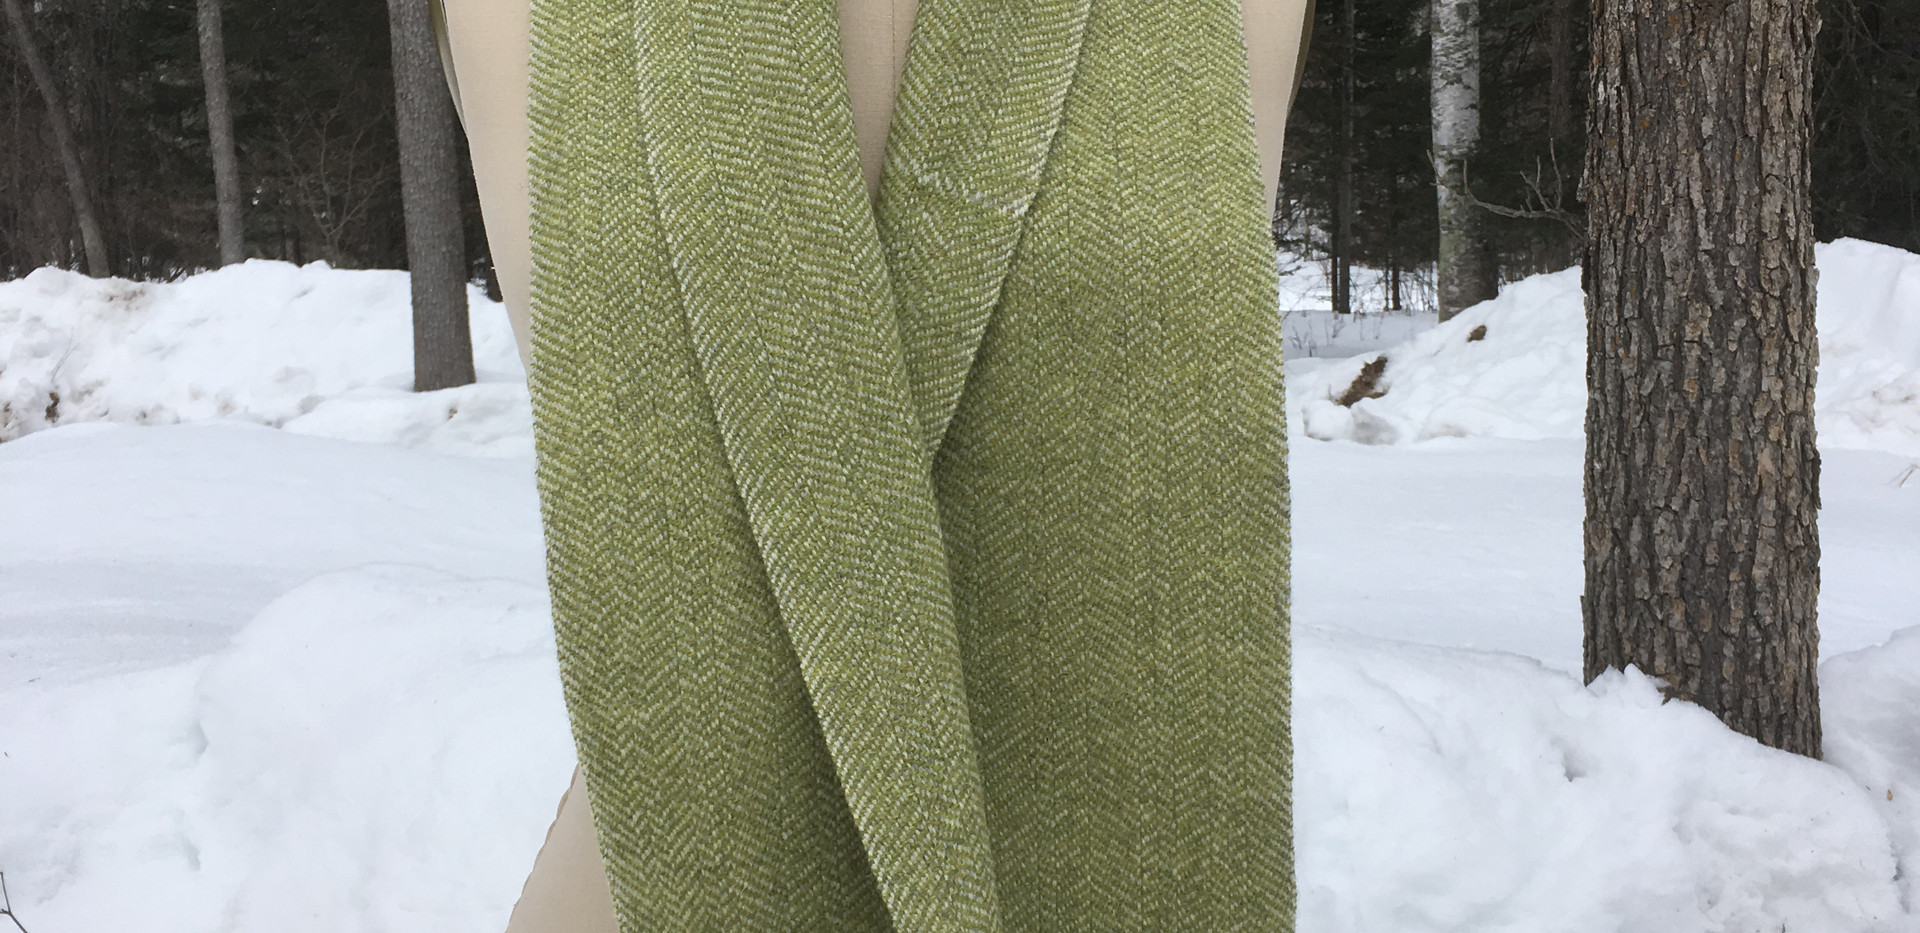 One Solid Color, White Sheep's Wool Warp, Hopper Lopper